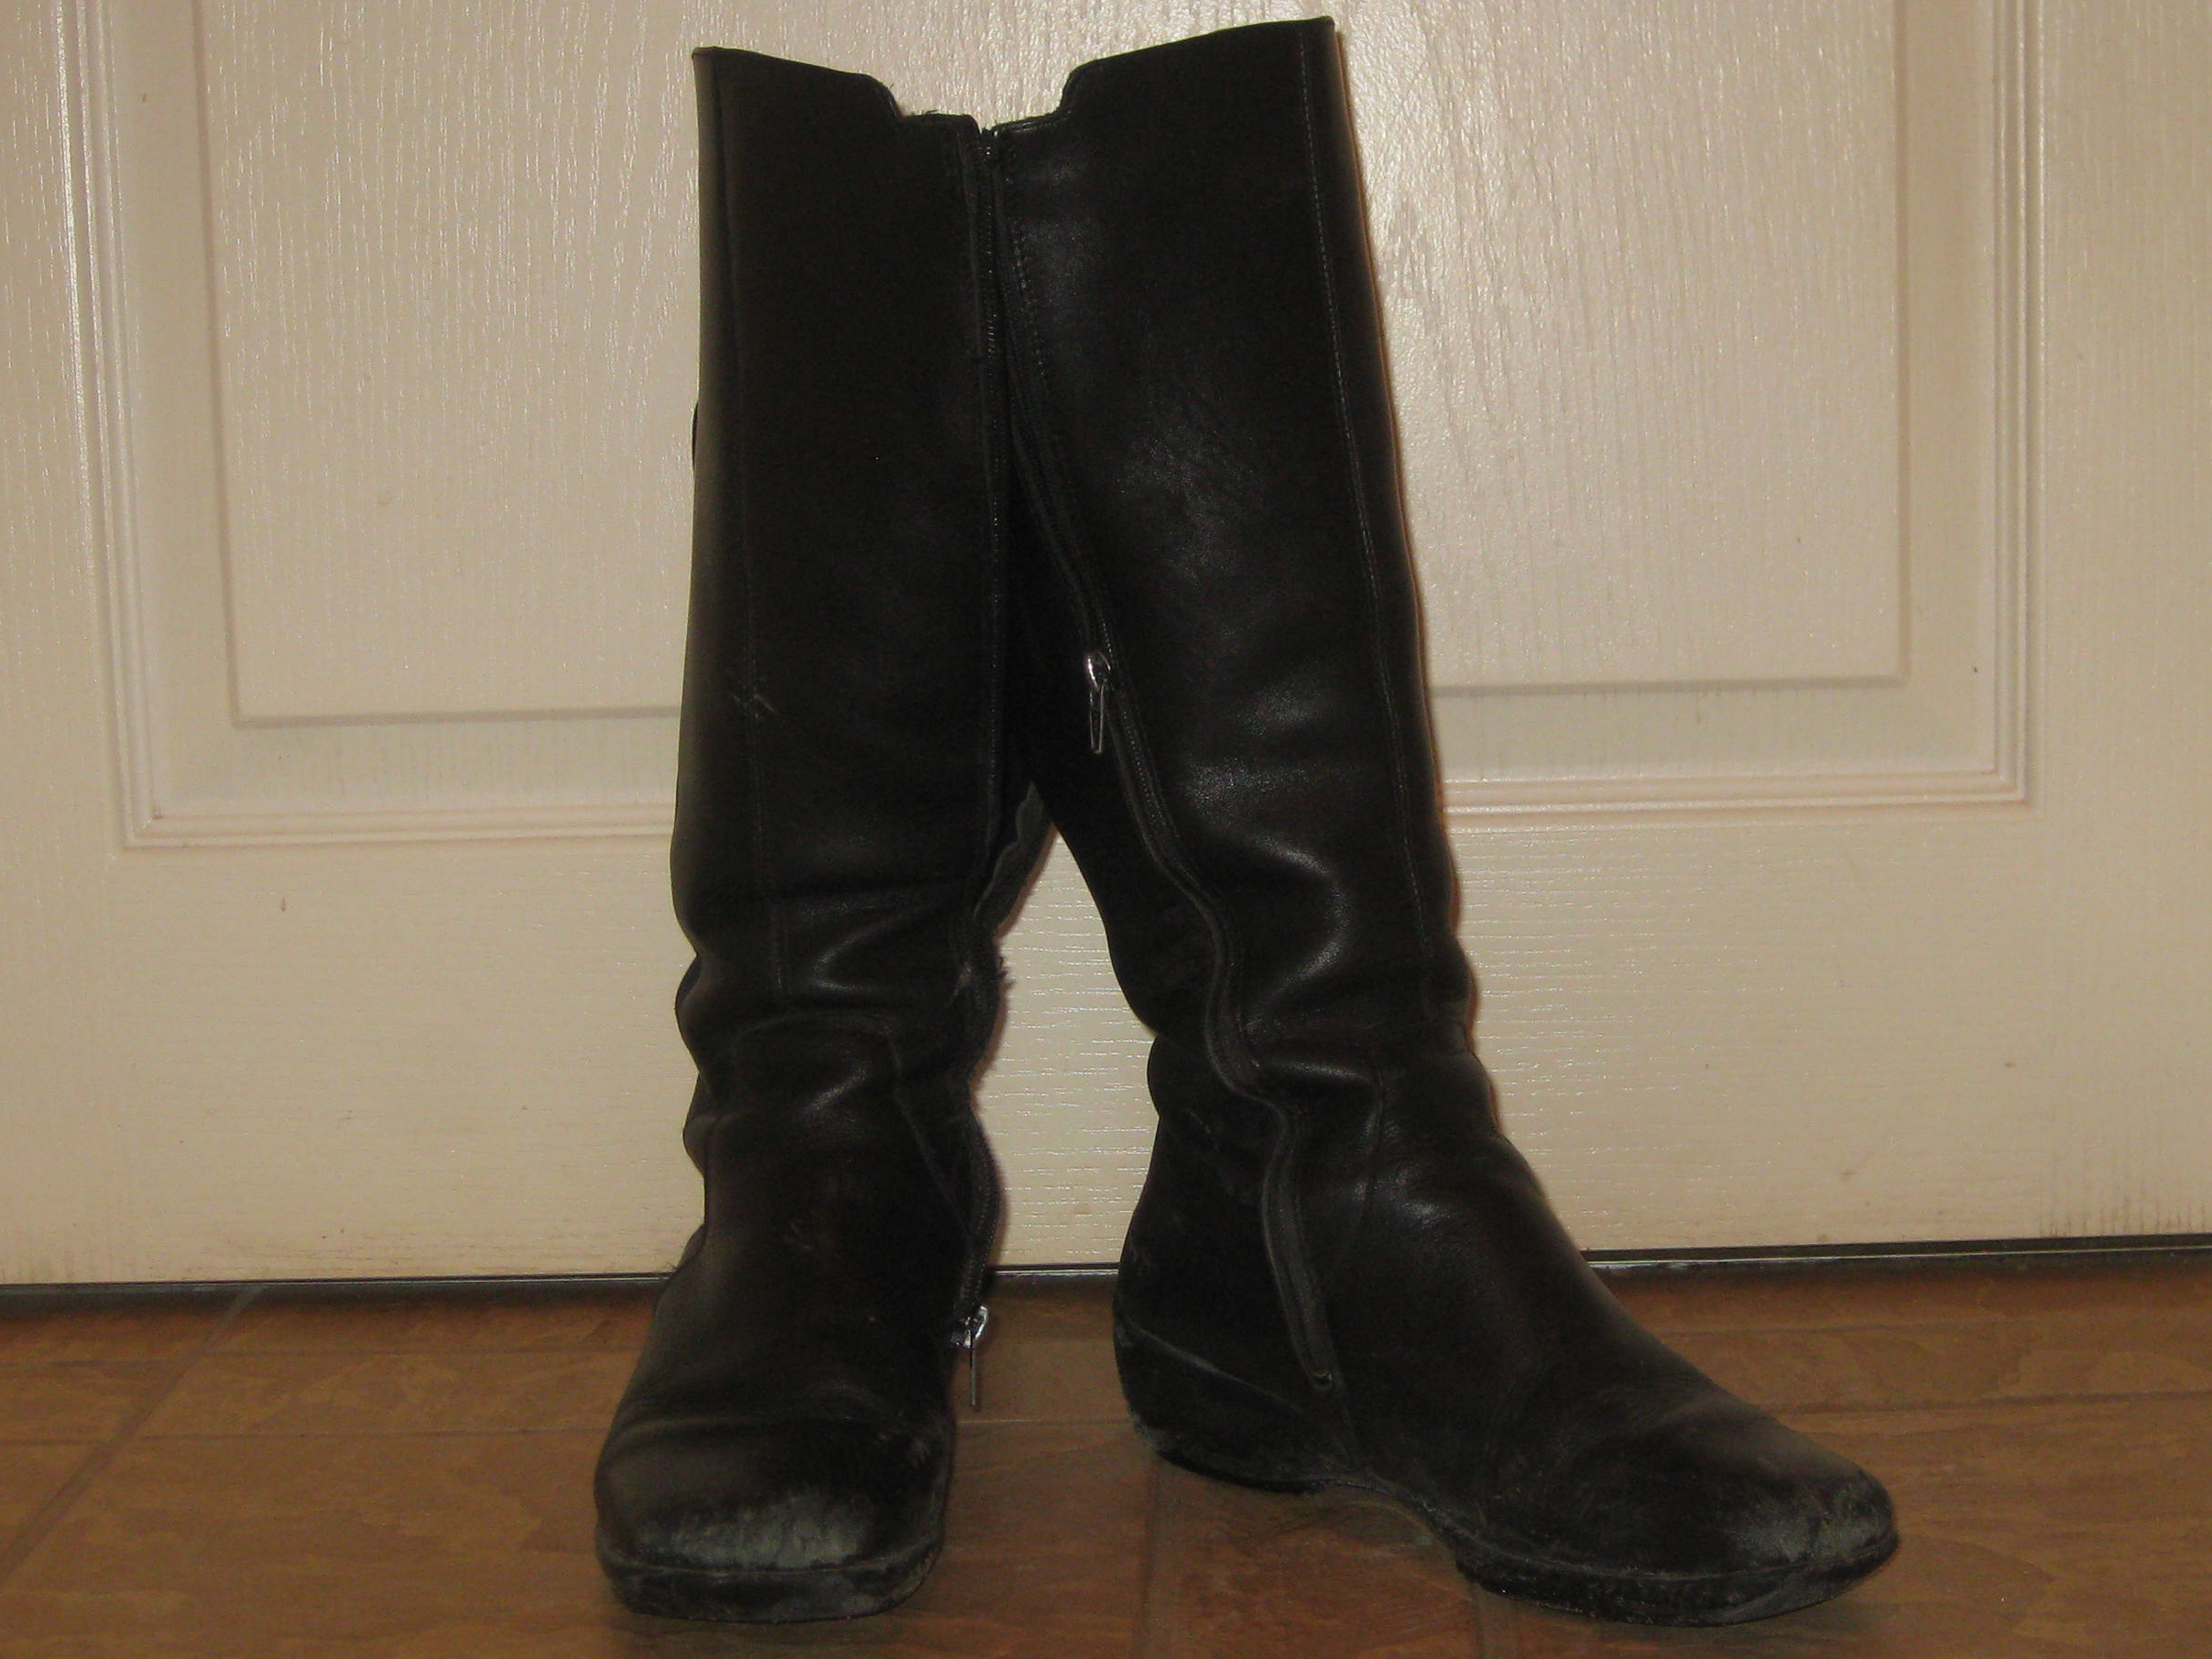 Old Black Boots